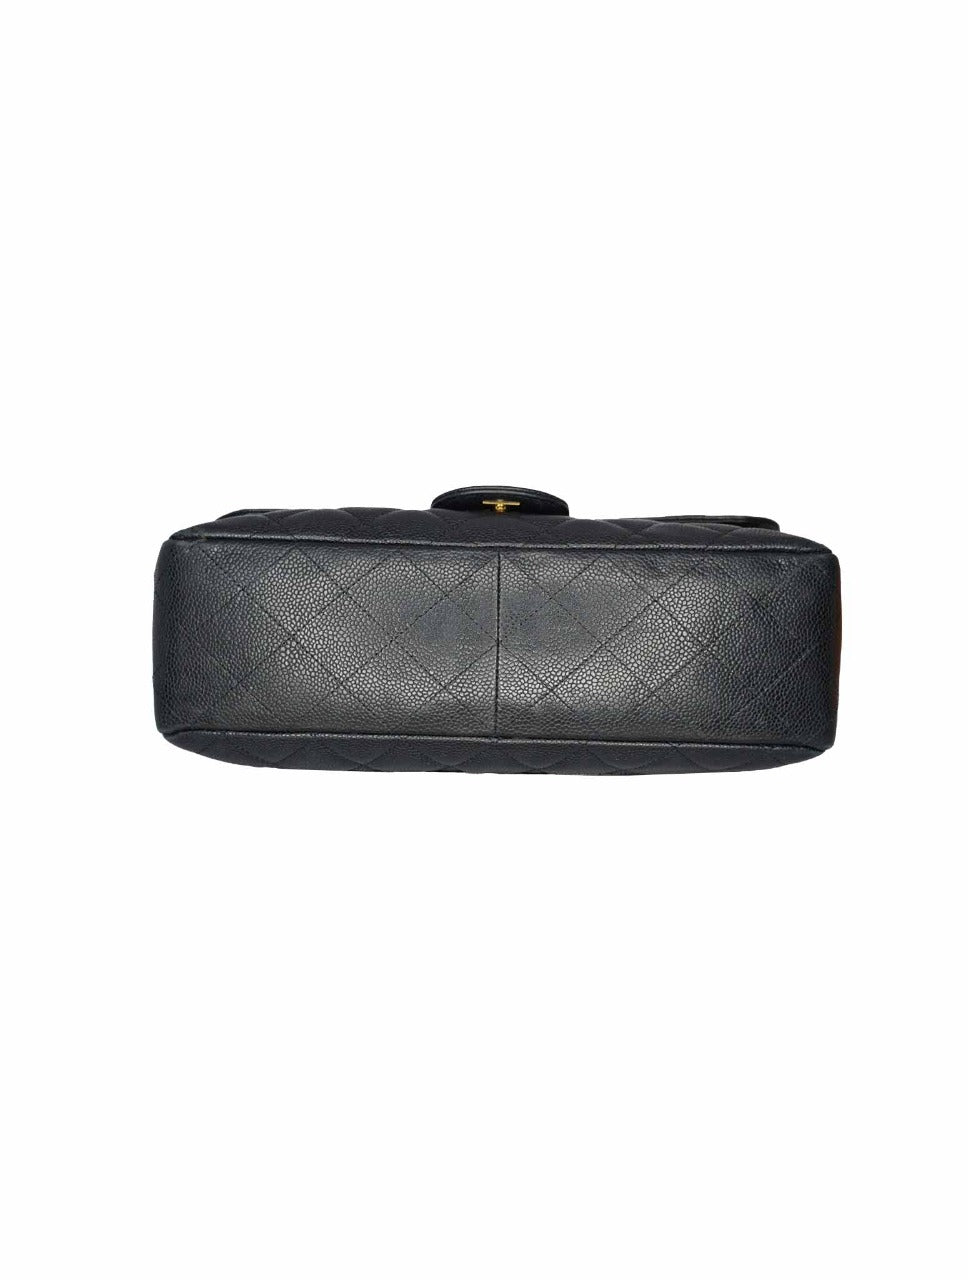 CLASSIC SINGLE FLAP JUMBO CAVIAR LEATHER